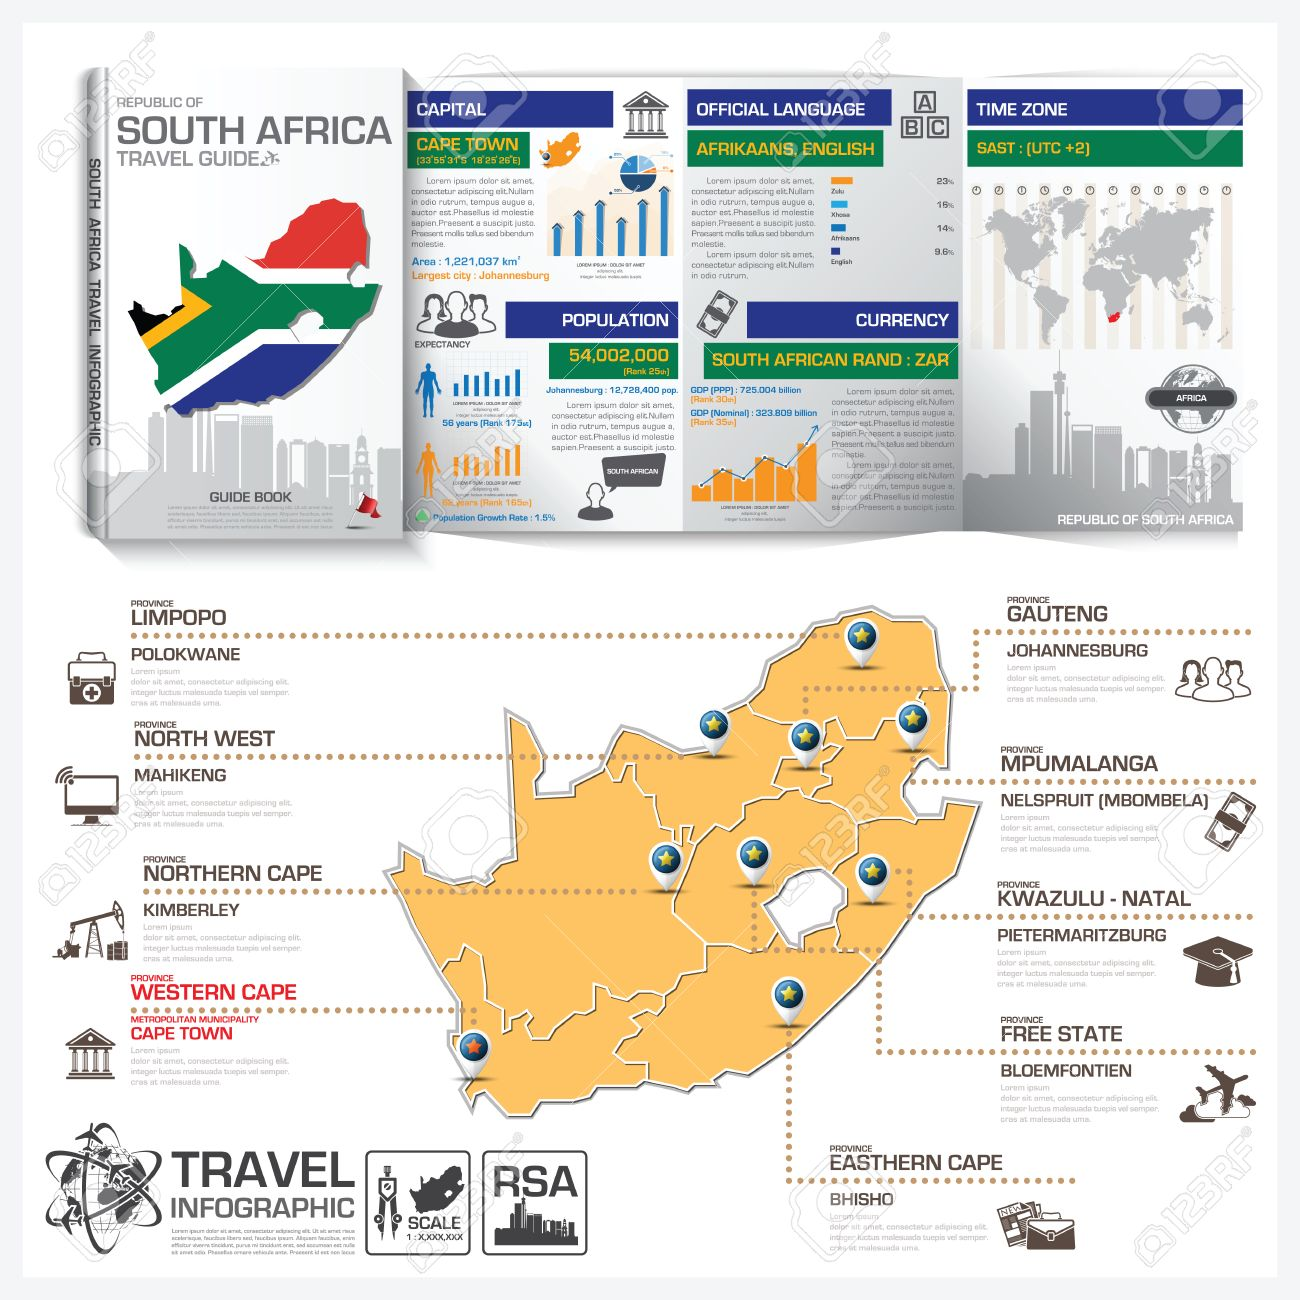 republic of south africa travel guide book business infographic